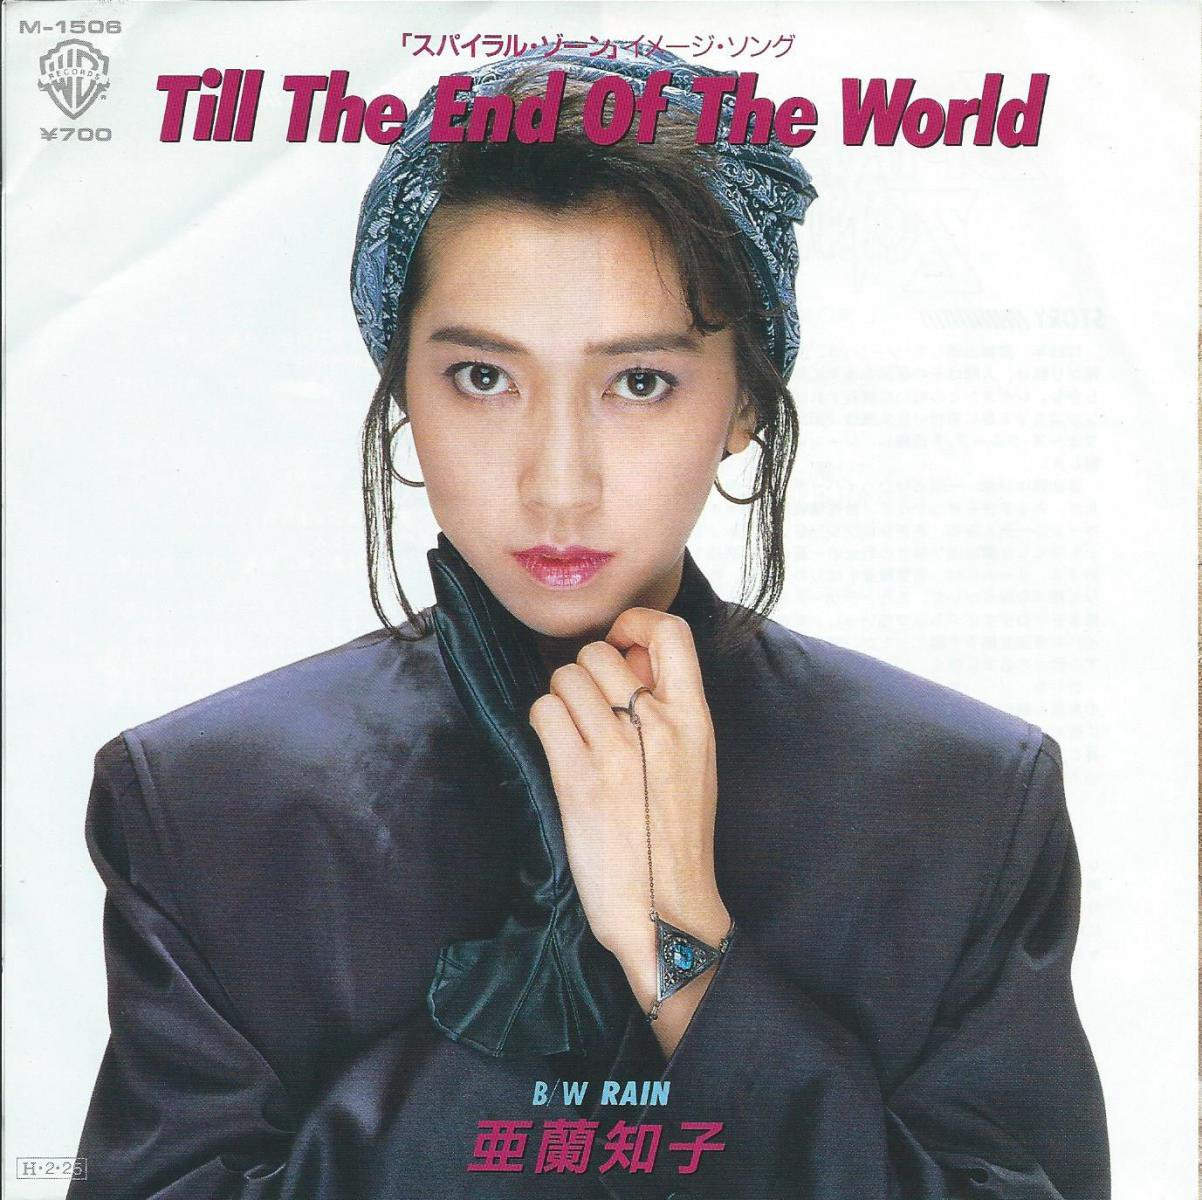 亜蘭知子 TOMOKO ARAN / TILL THE END OF THE WORLD / RAIN (7